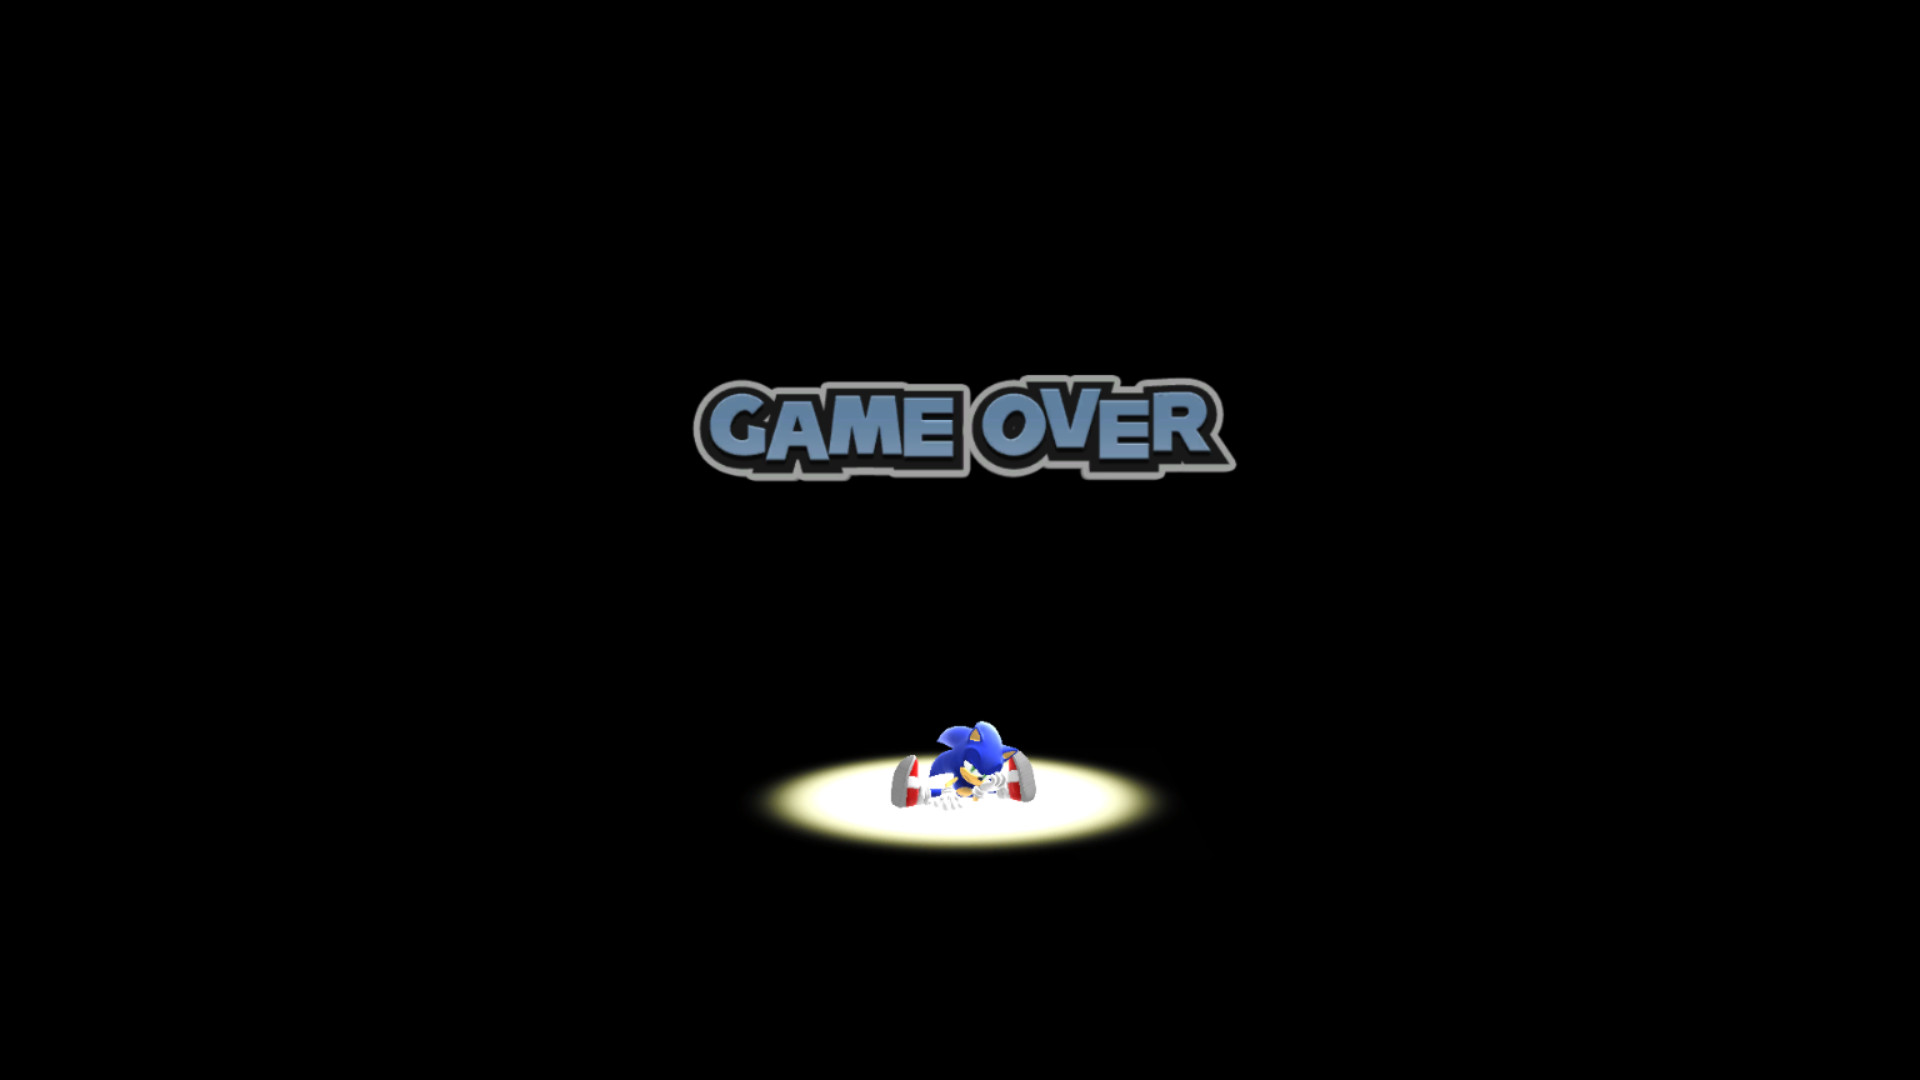 1920x1080 The Game Over screen of the Wii U/PC version of Sonic Lost World.